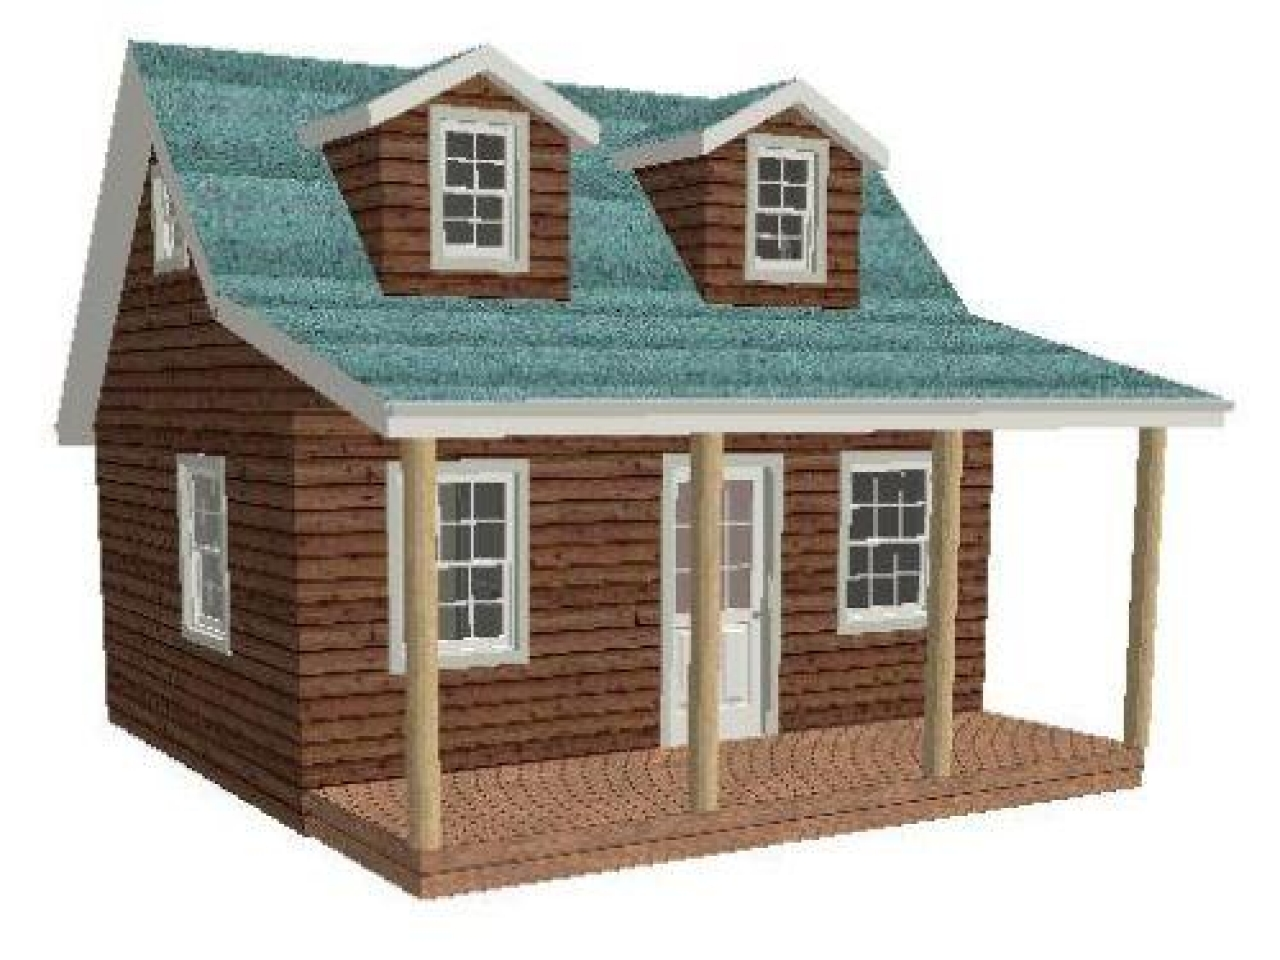 16x20 shed material list 16x20 cabin plan with loft shed for Shed roof cabin with loft